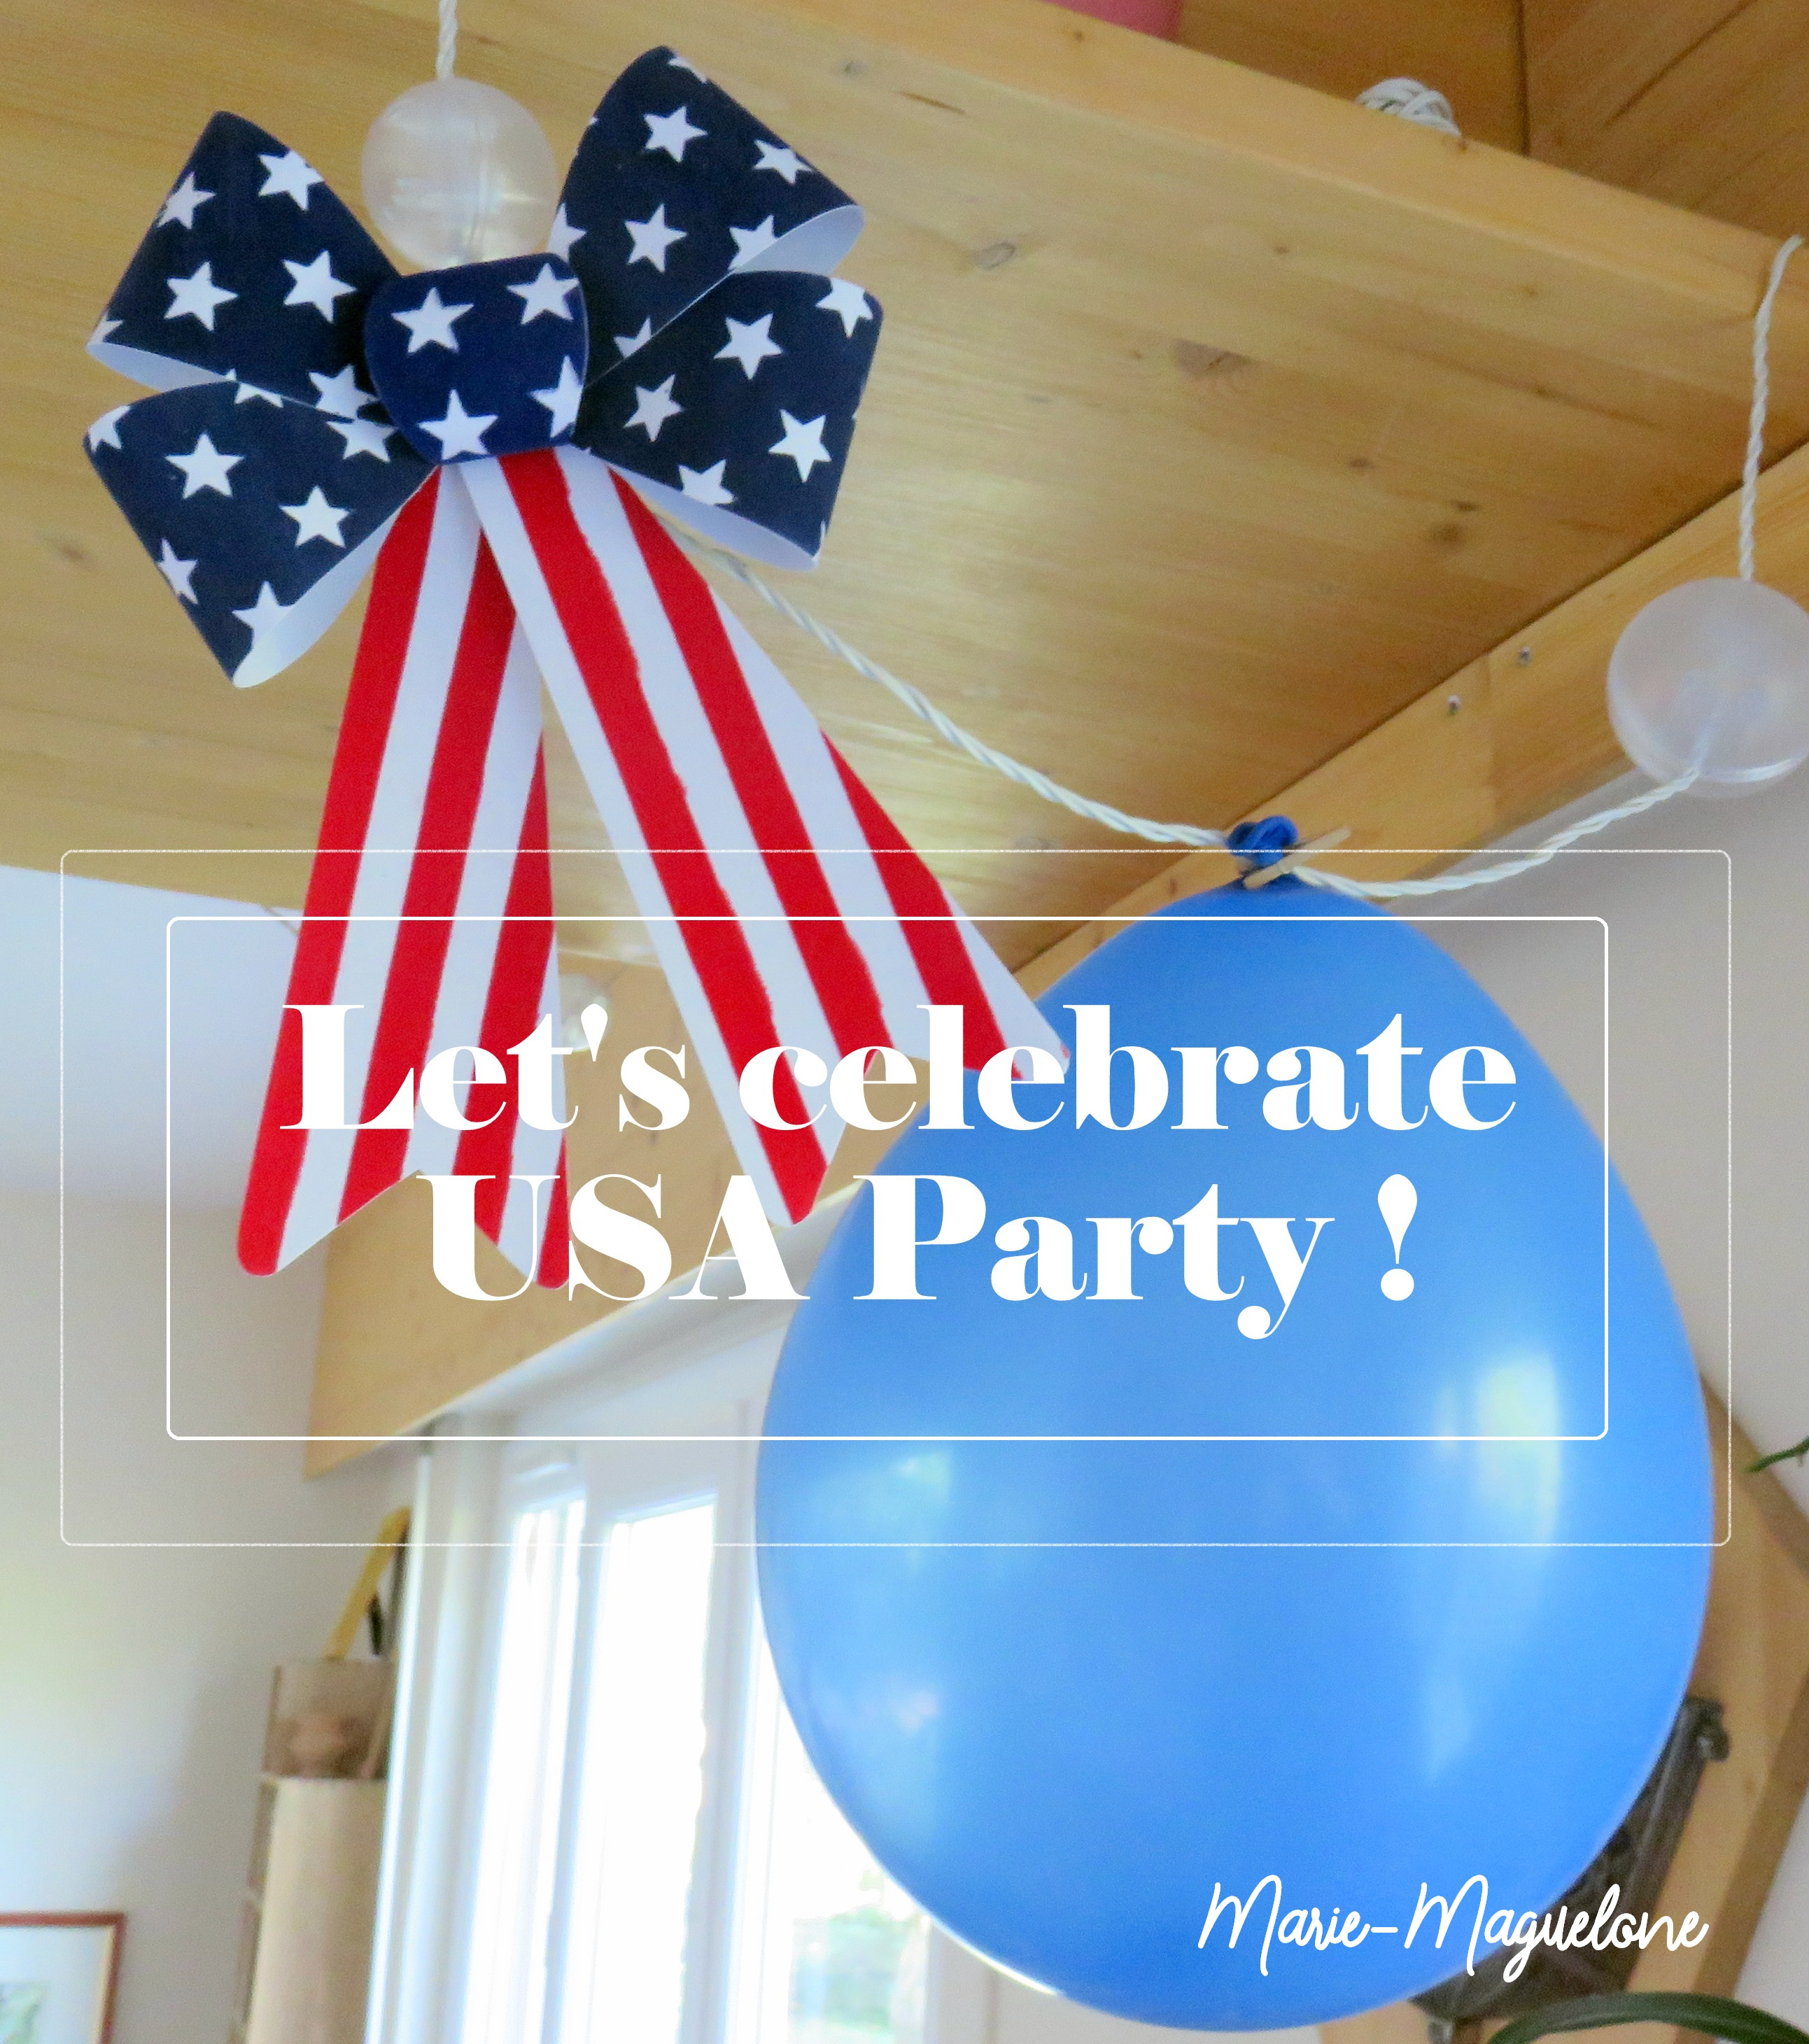 lets celebrate usa party organiser une f te 2 marie maguelone. Black Bedroom Furniture Sets. Home Design Ideas